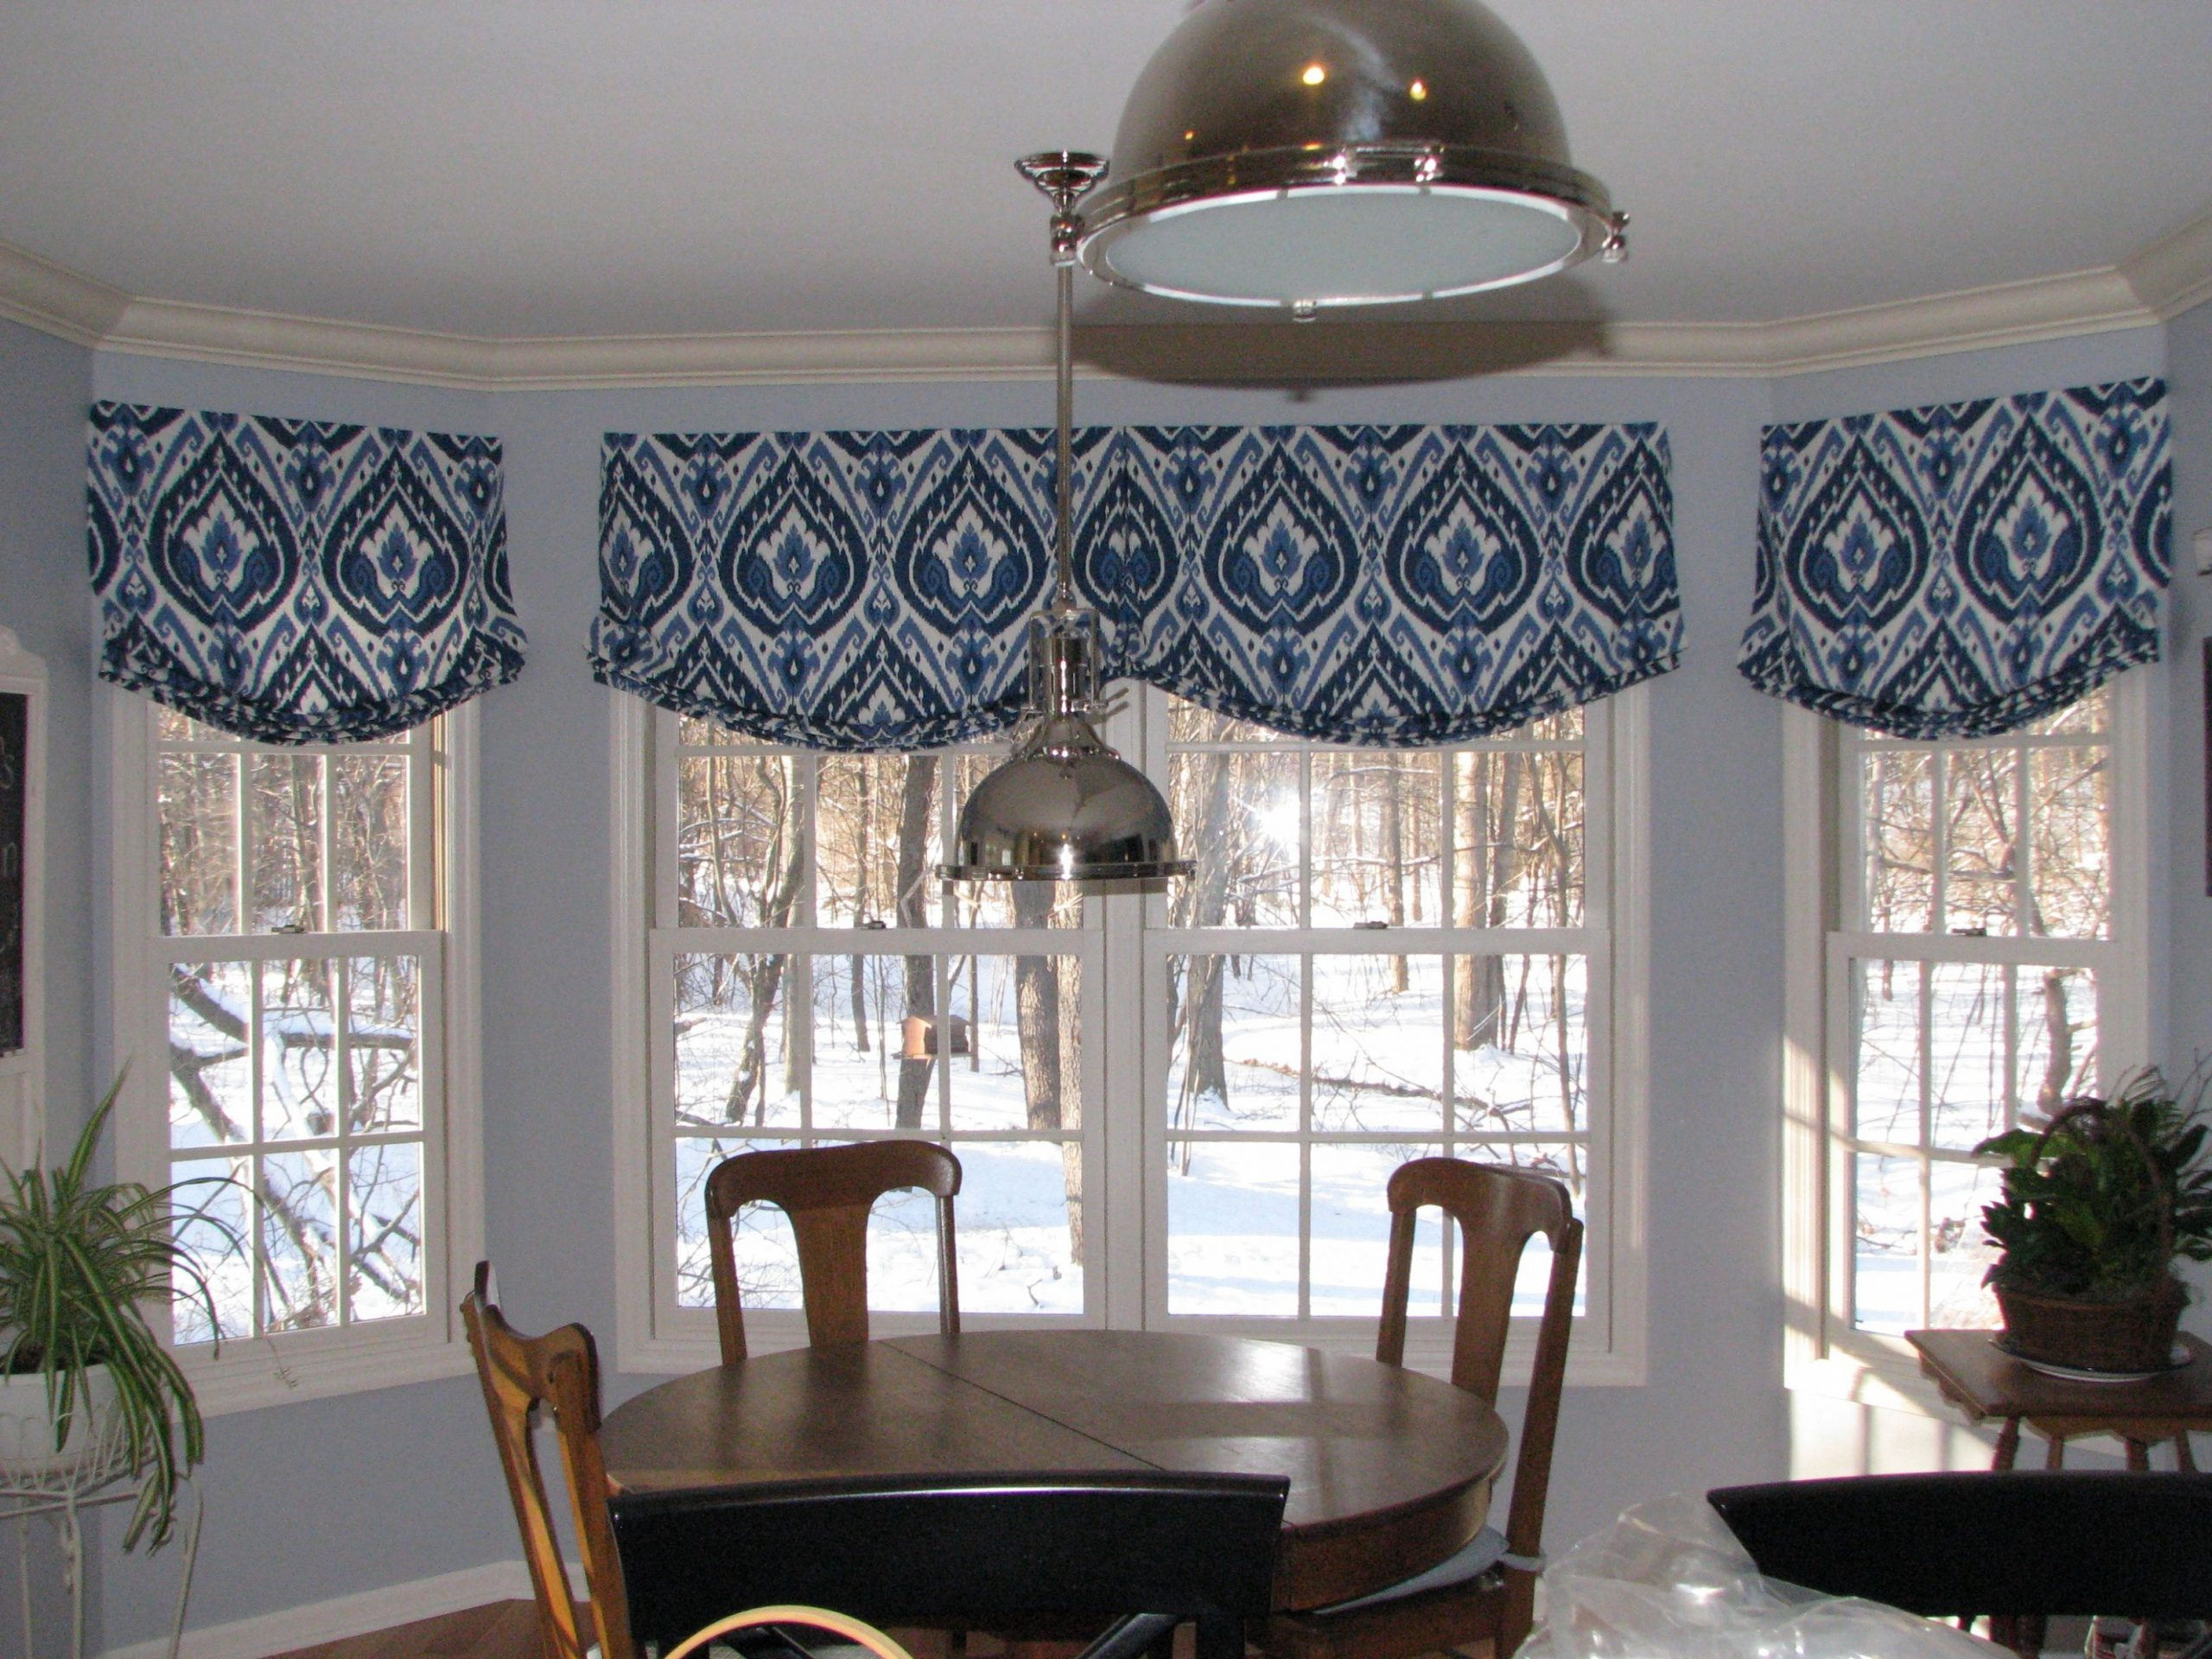 Relaxed roman shade valance in Ultra Marine Ikat pattern creates a  - Dining Room Window Valance Ideas